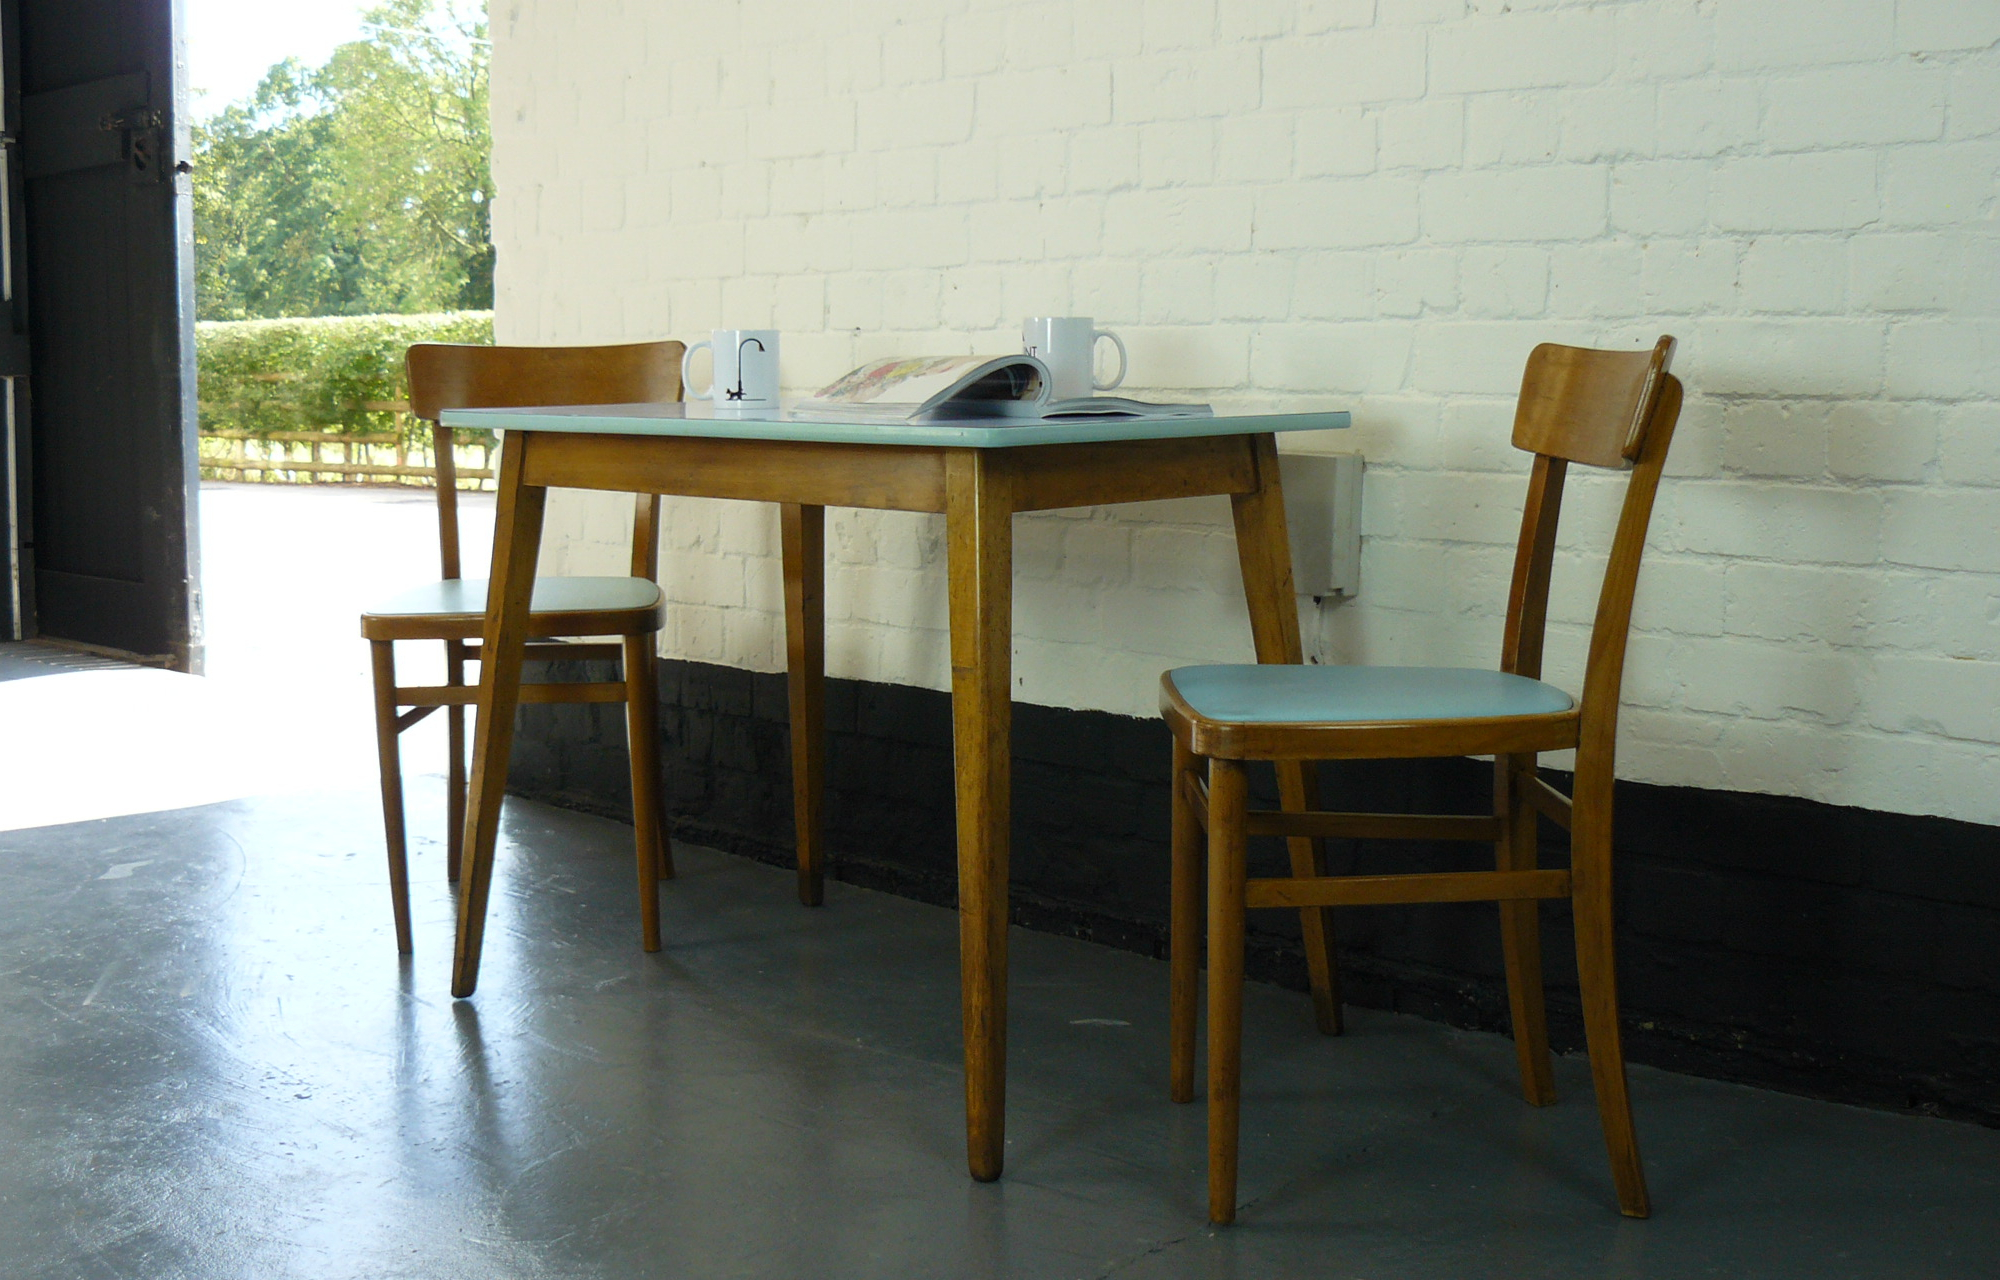 1960s Vintage Kitchen Table And Two Chairs SOLD